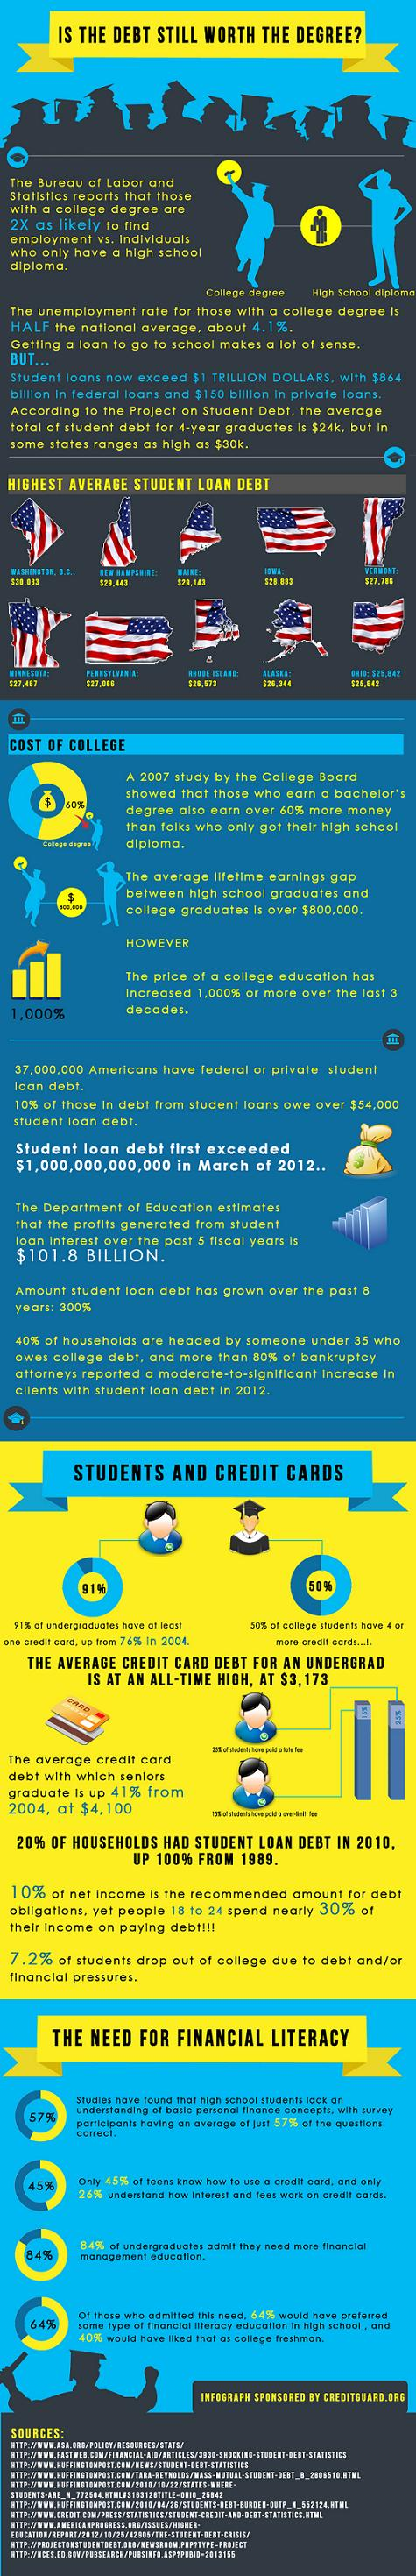 creditguards infographic.KBIC 10 30.org_